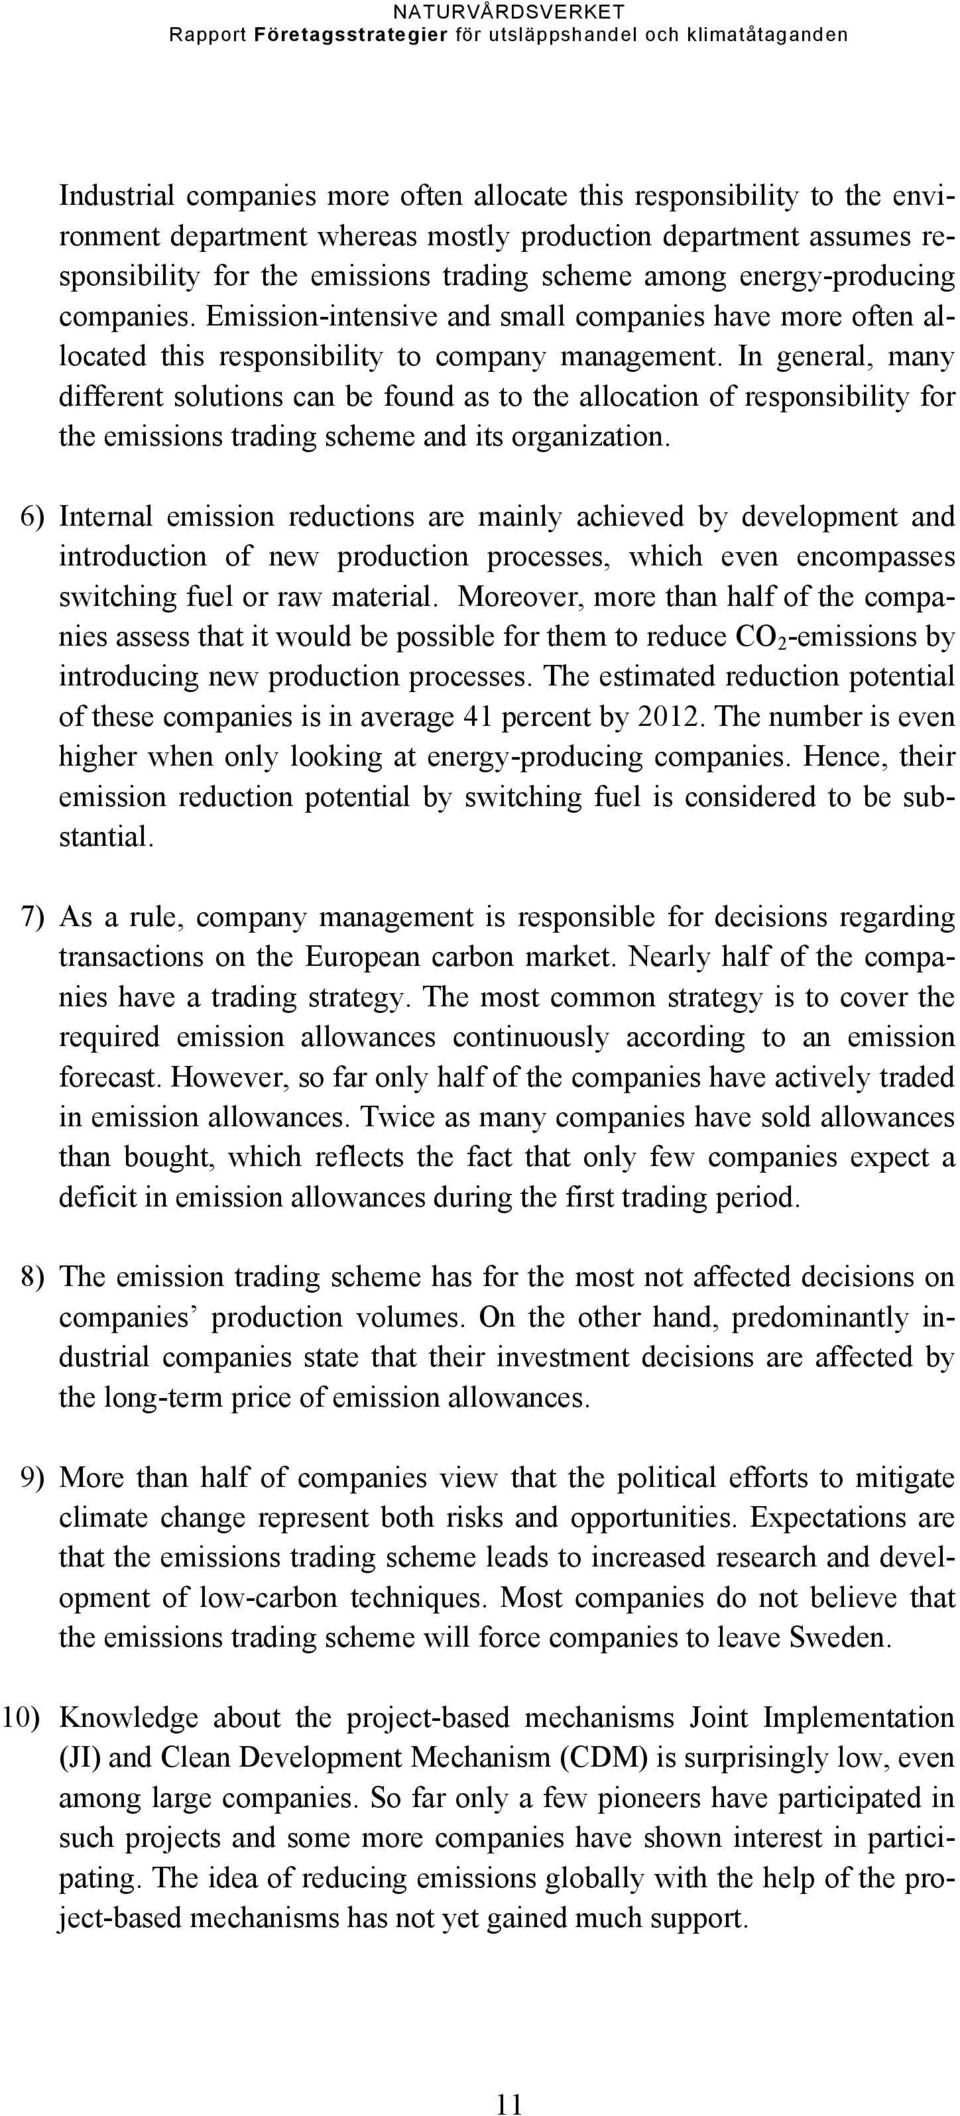 In general, many different solutions can be found as to the allocation of responsibility for the emissions trading scheme and its organization.